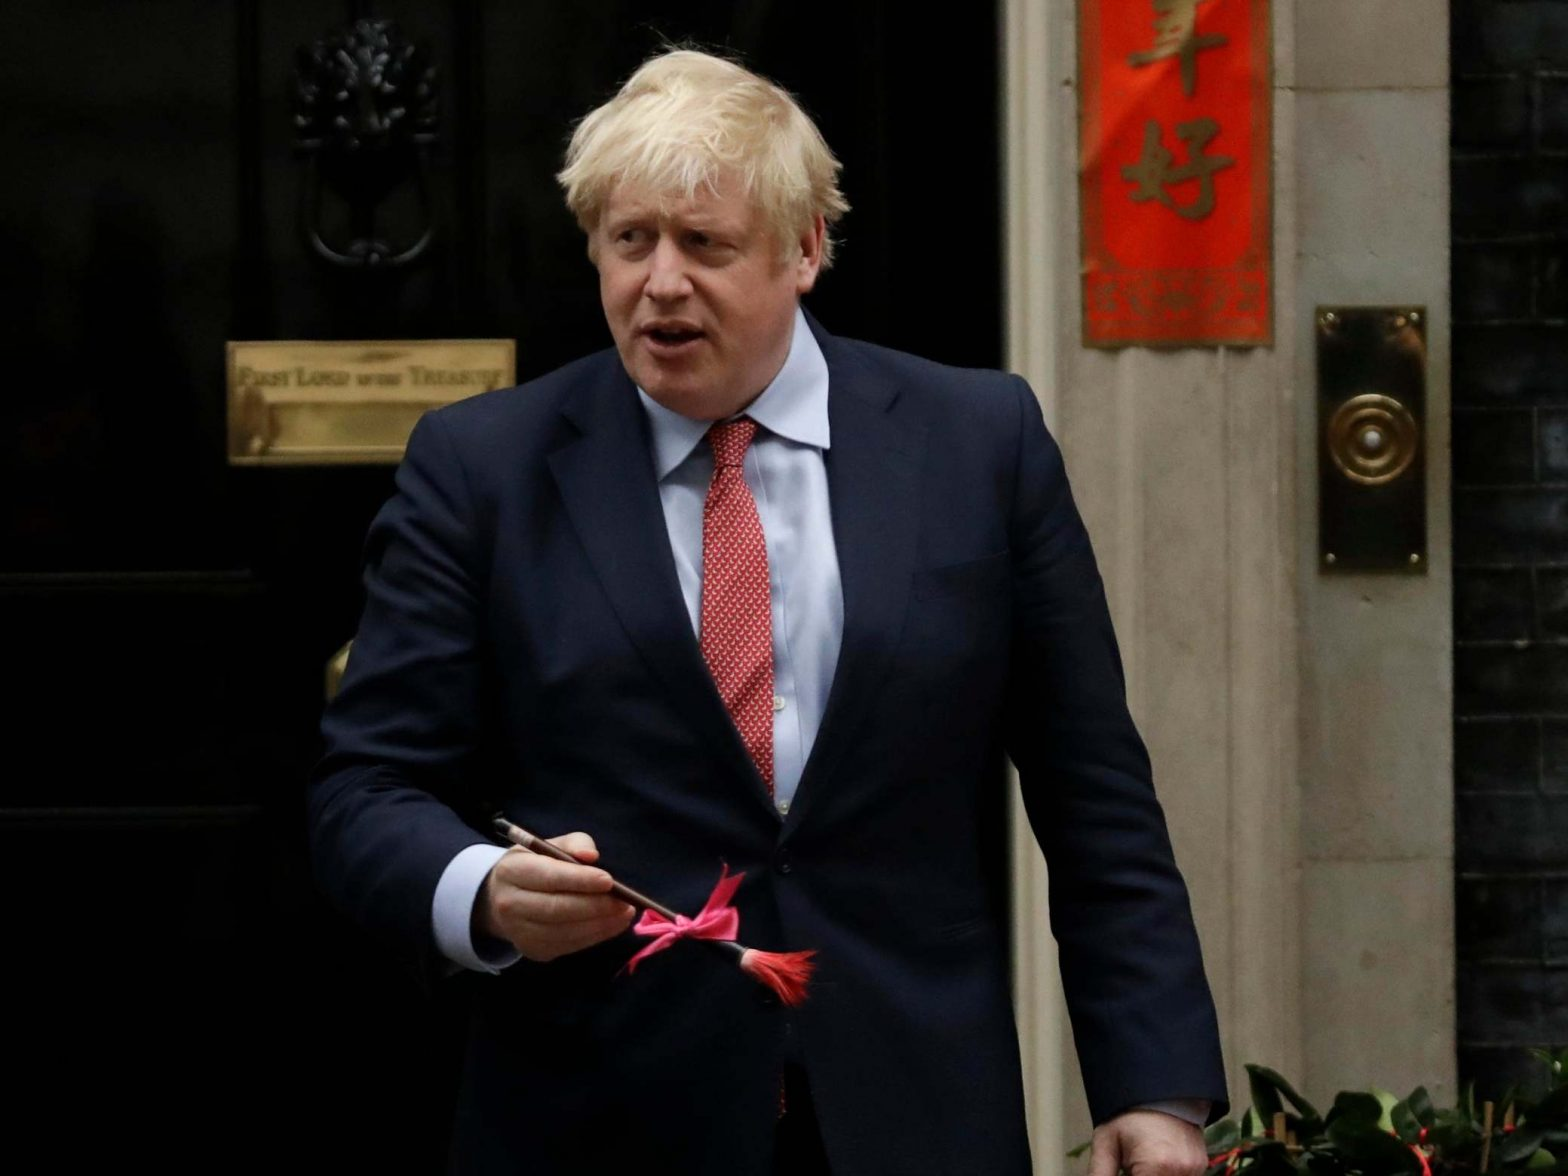 Boris Johnson tells US Harry Dunn suspect 'needs to return' as diplomatic row escalates